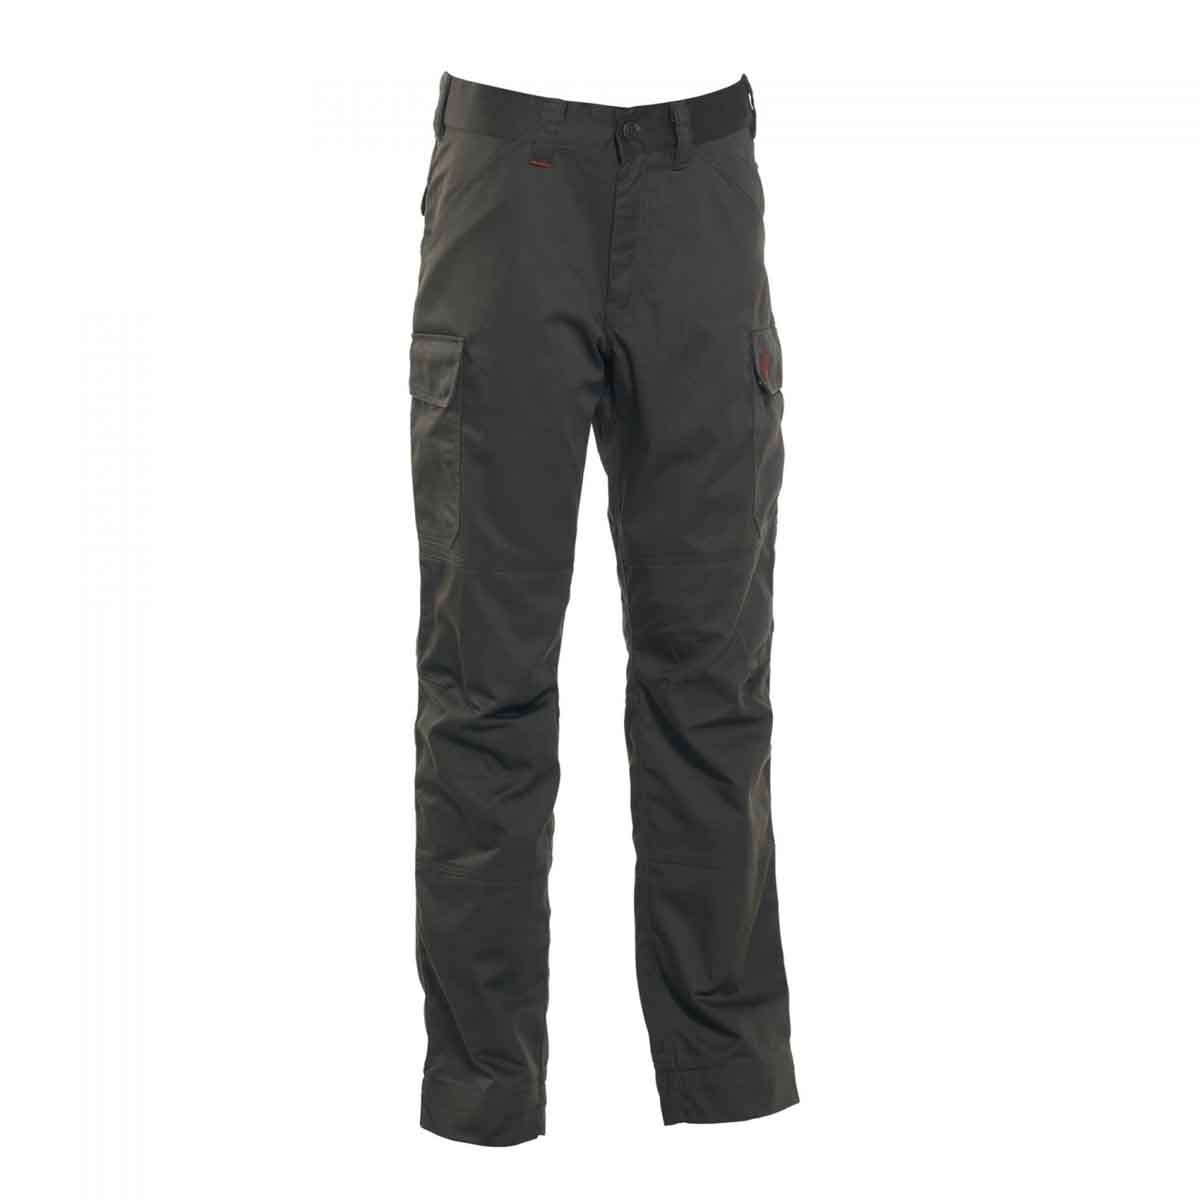 Deerhunter Rogaland Expedition Trousers (Rogaland Expedition Hose)